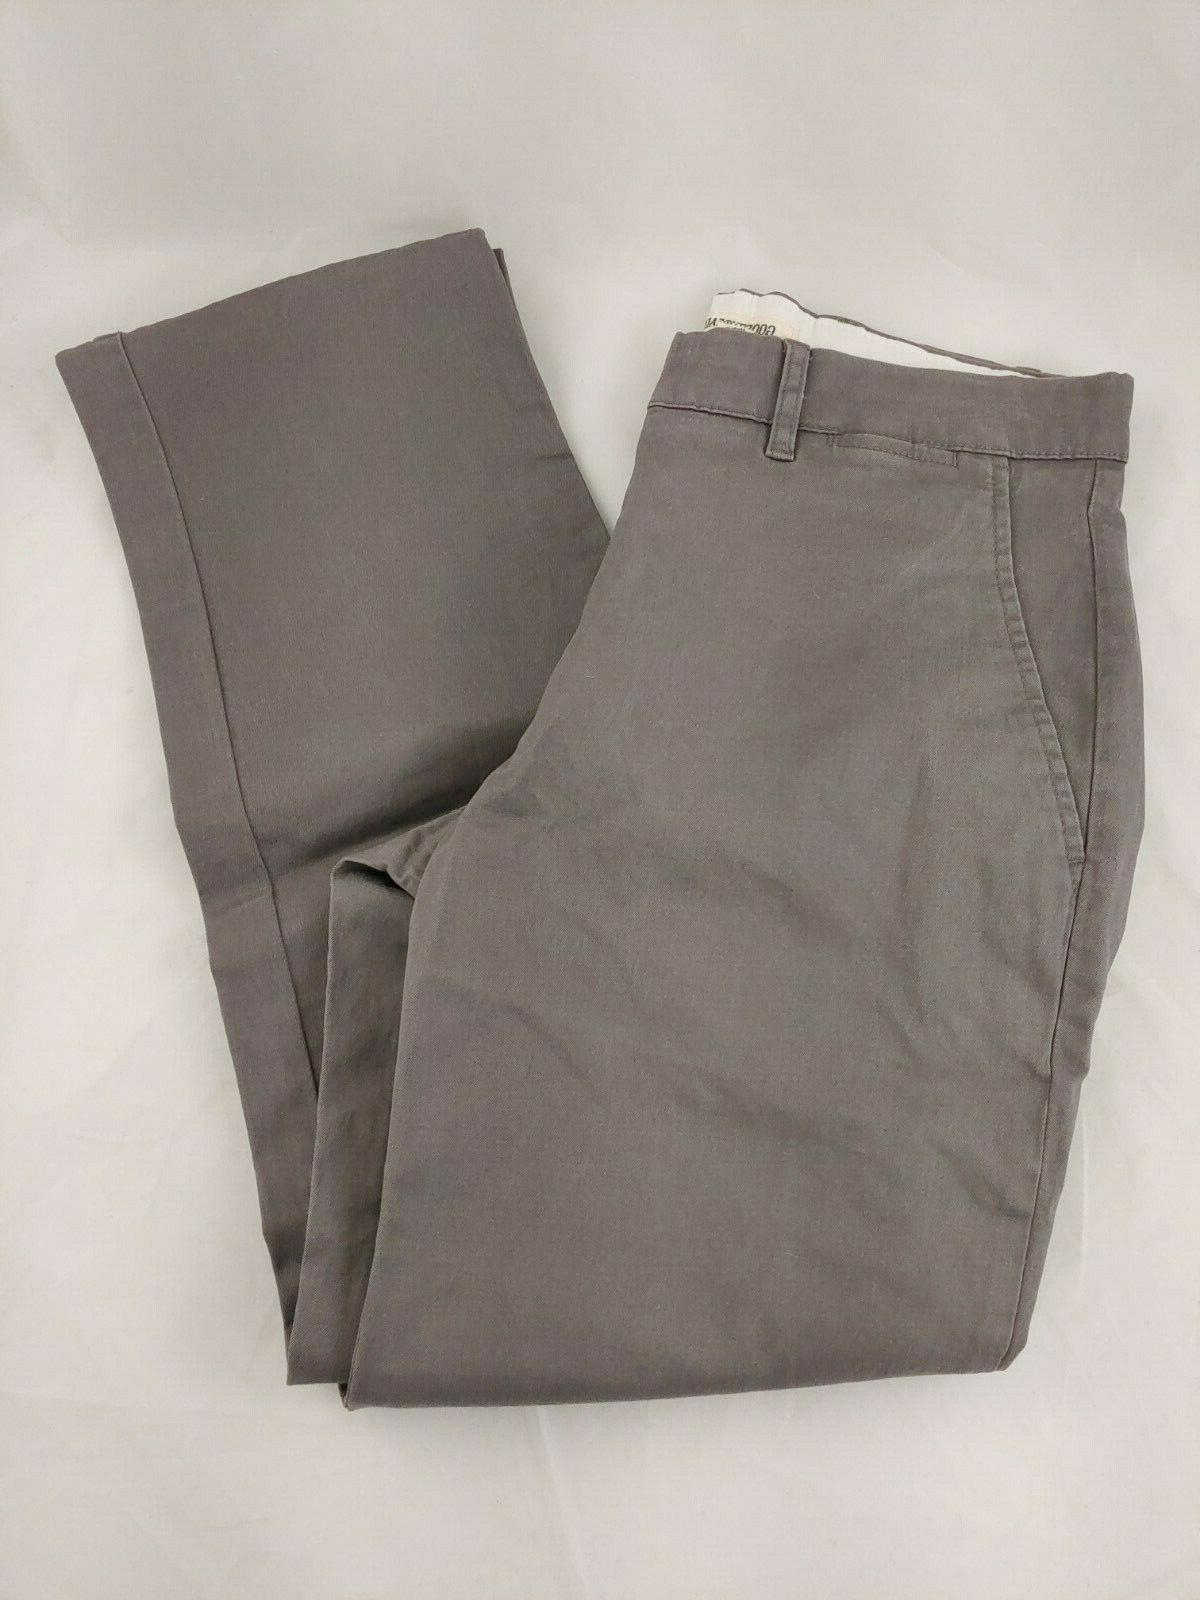 Goodthreads Pants Comfort Stretch Gray Sz 28L